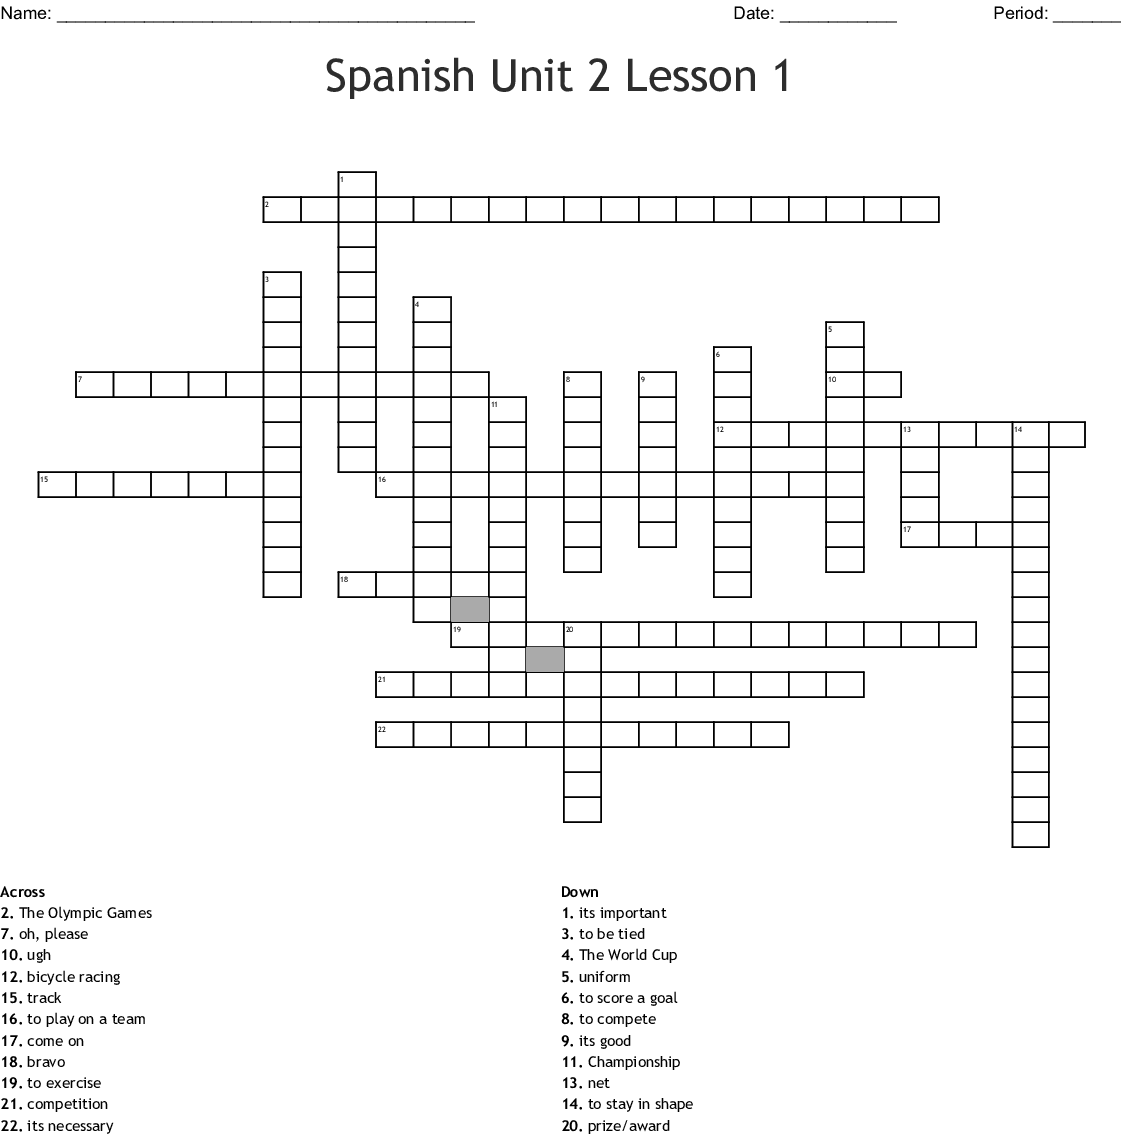 Spanish Unit 2 Lesson 1 Crossword